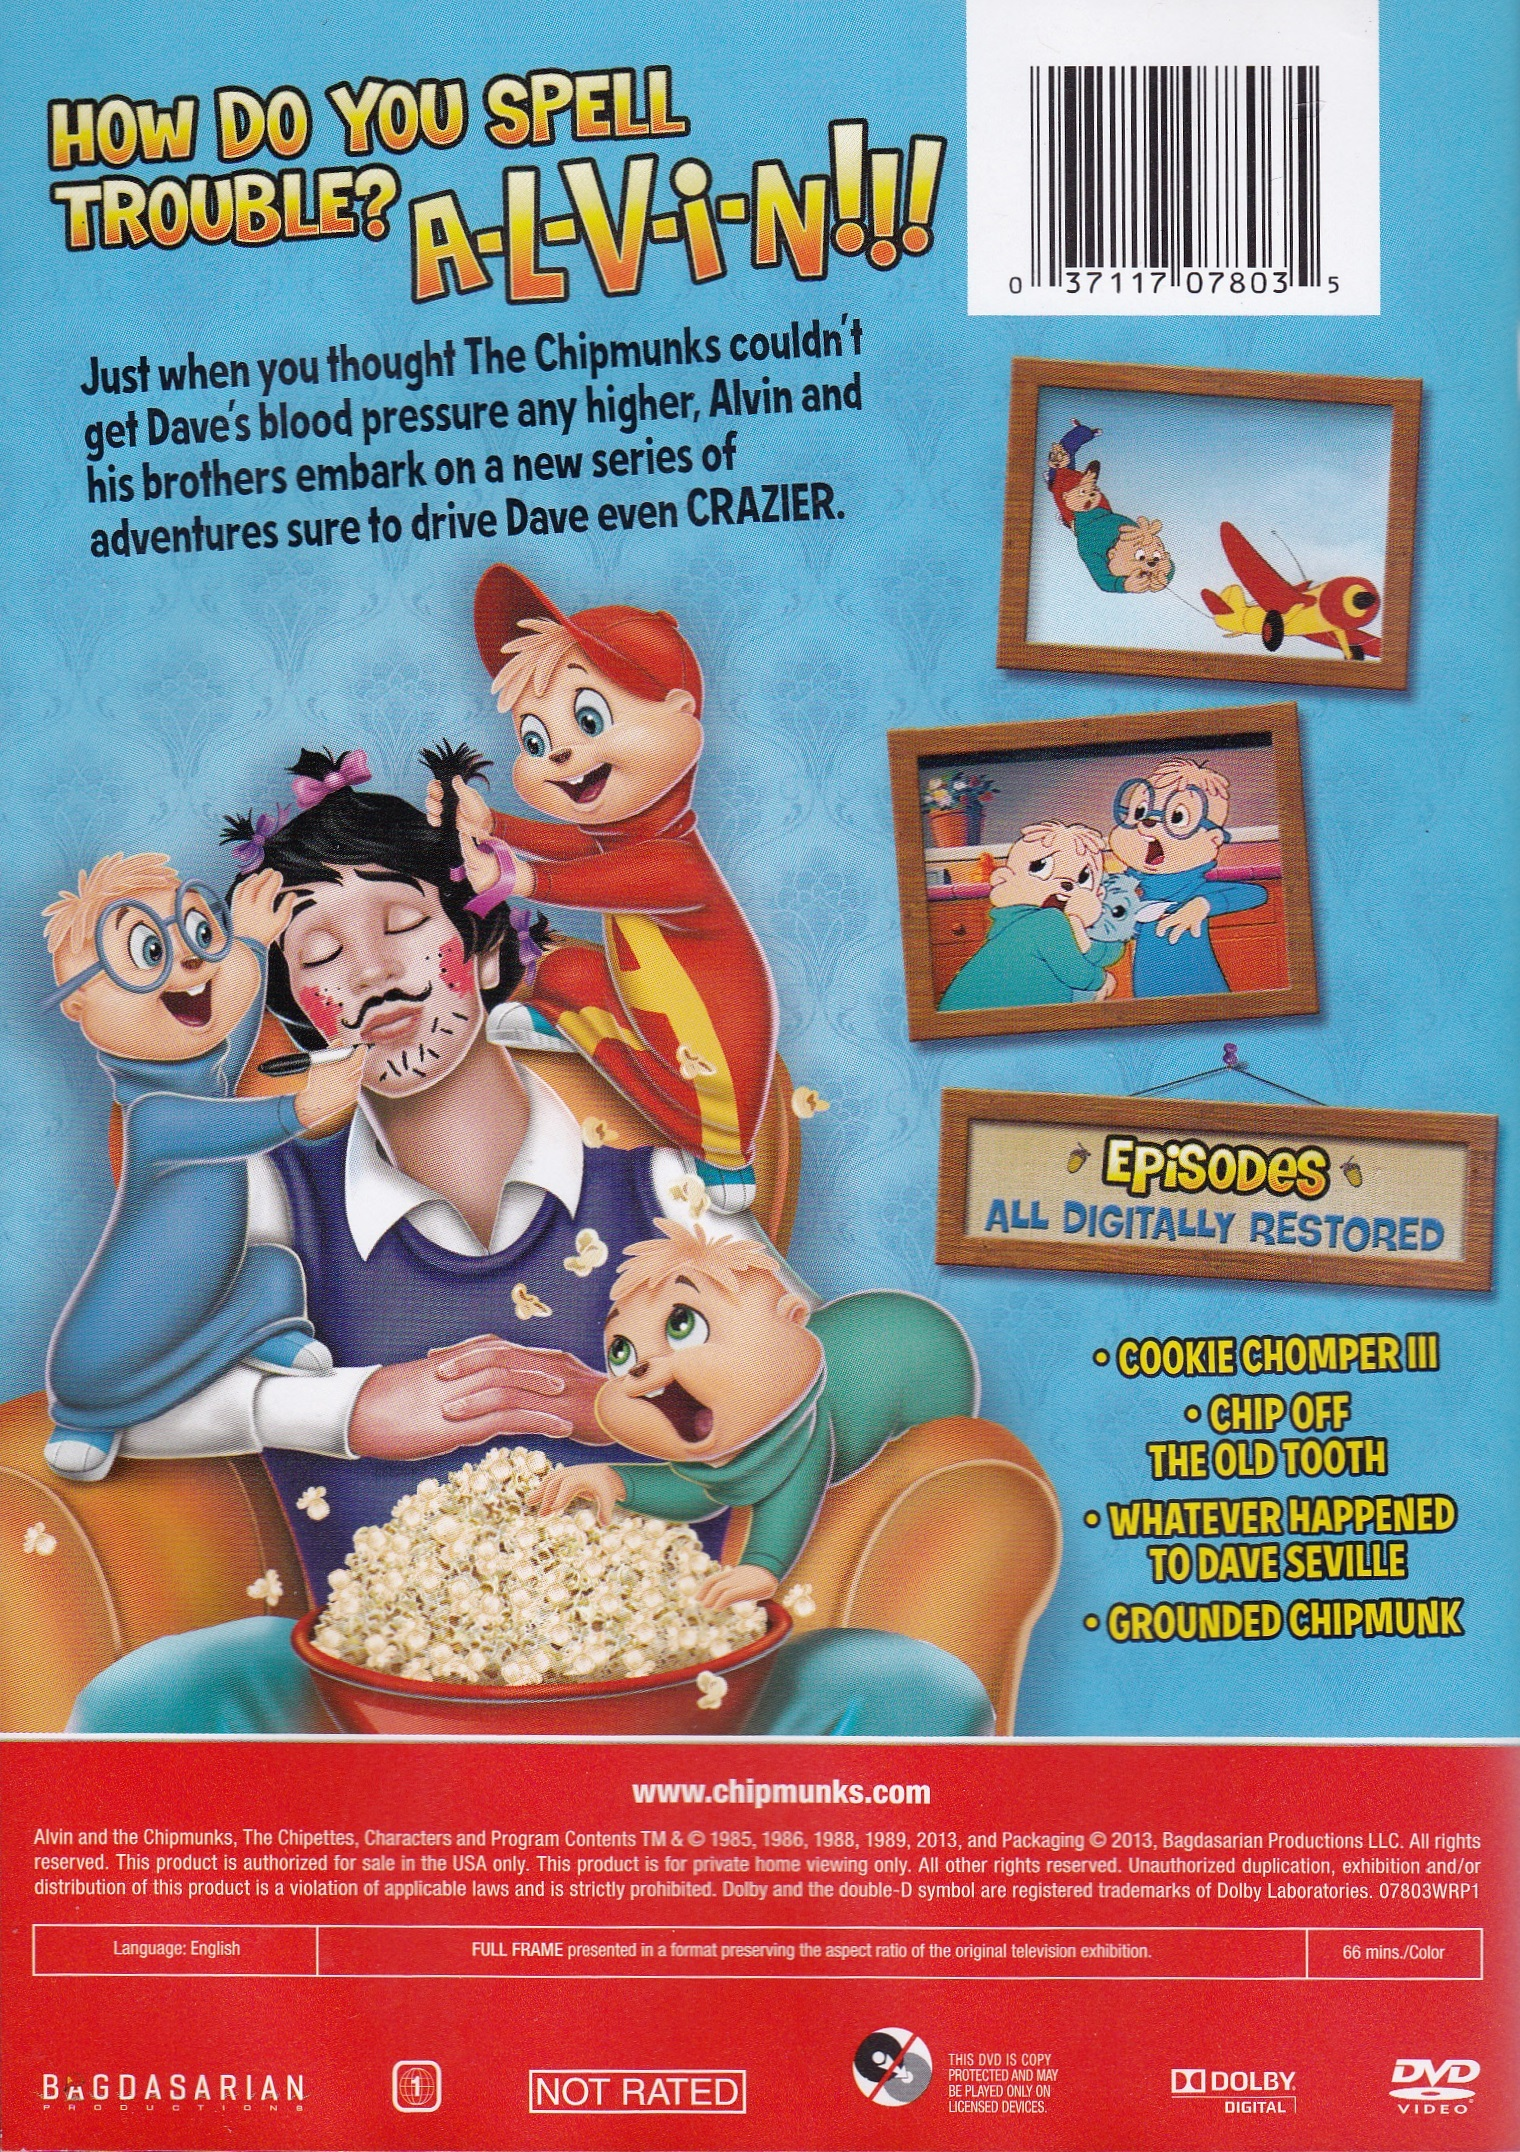 Driving Dave Crazier DVD  Alvin and the Chipmunks Wiki